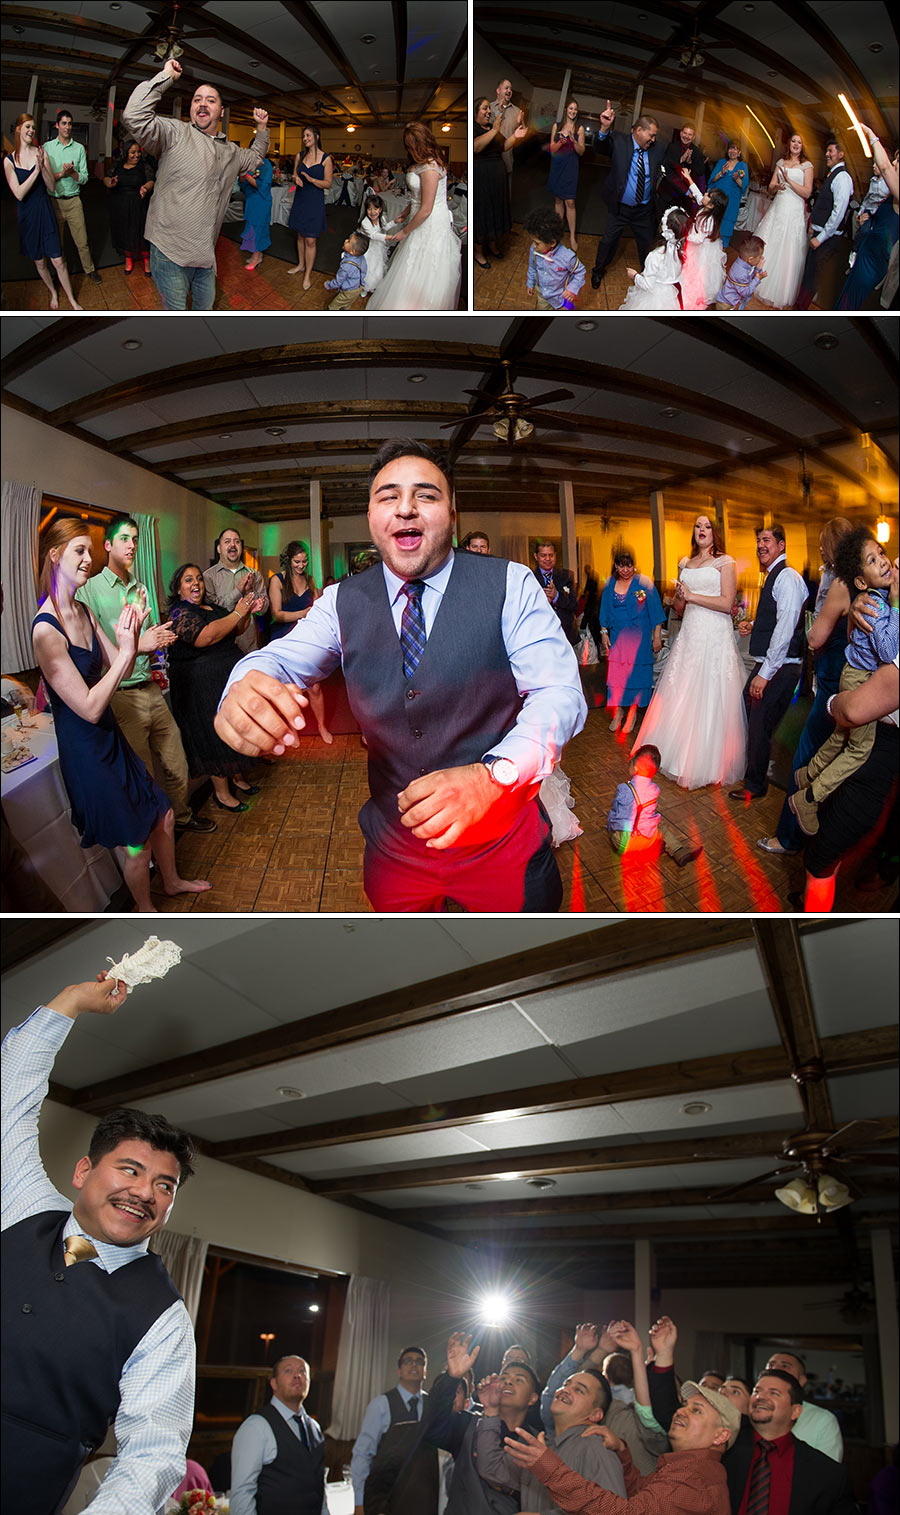 garter toss wedding party photos